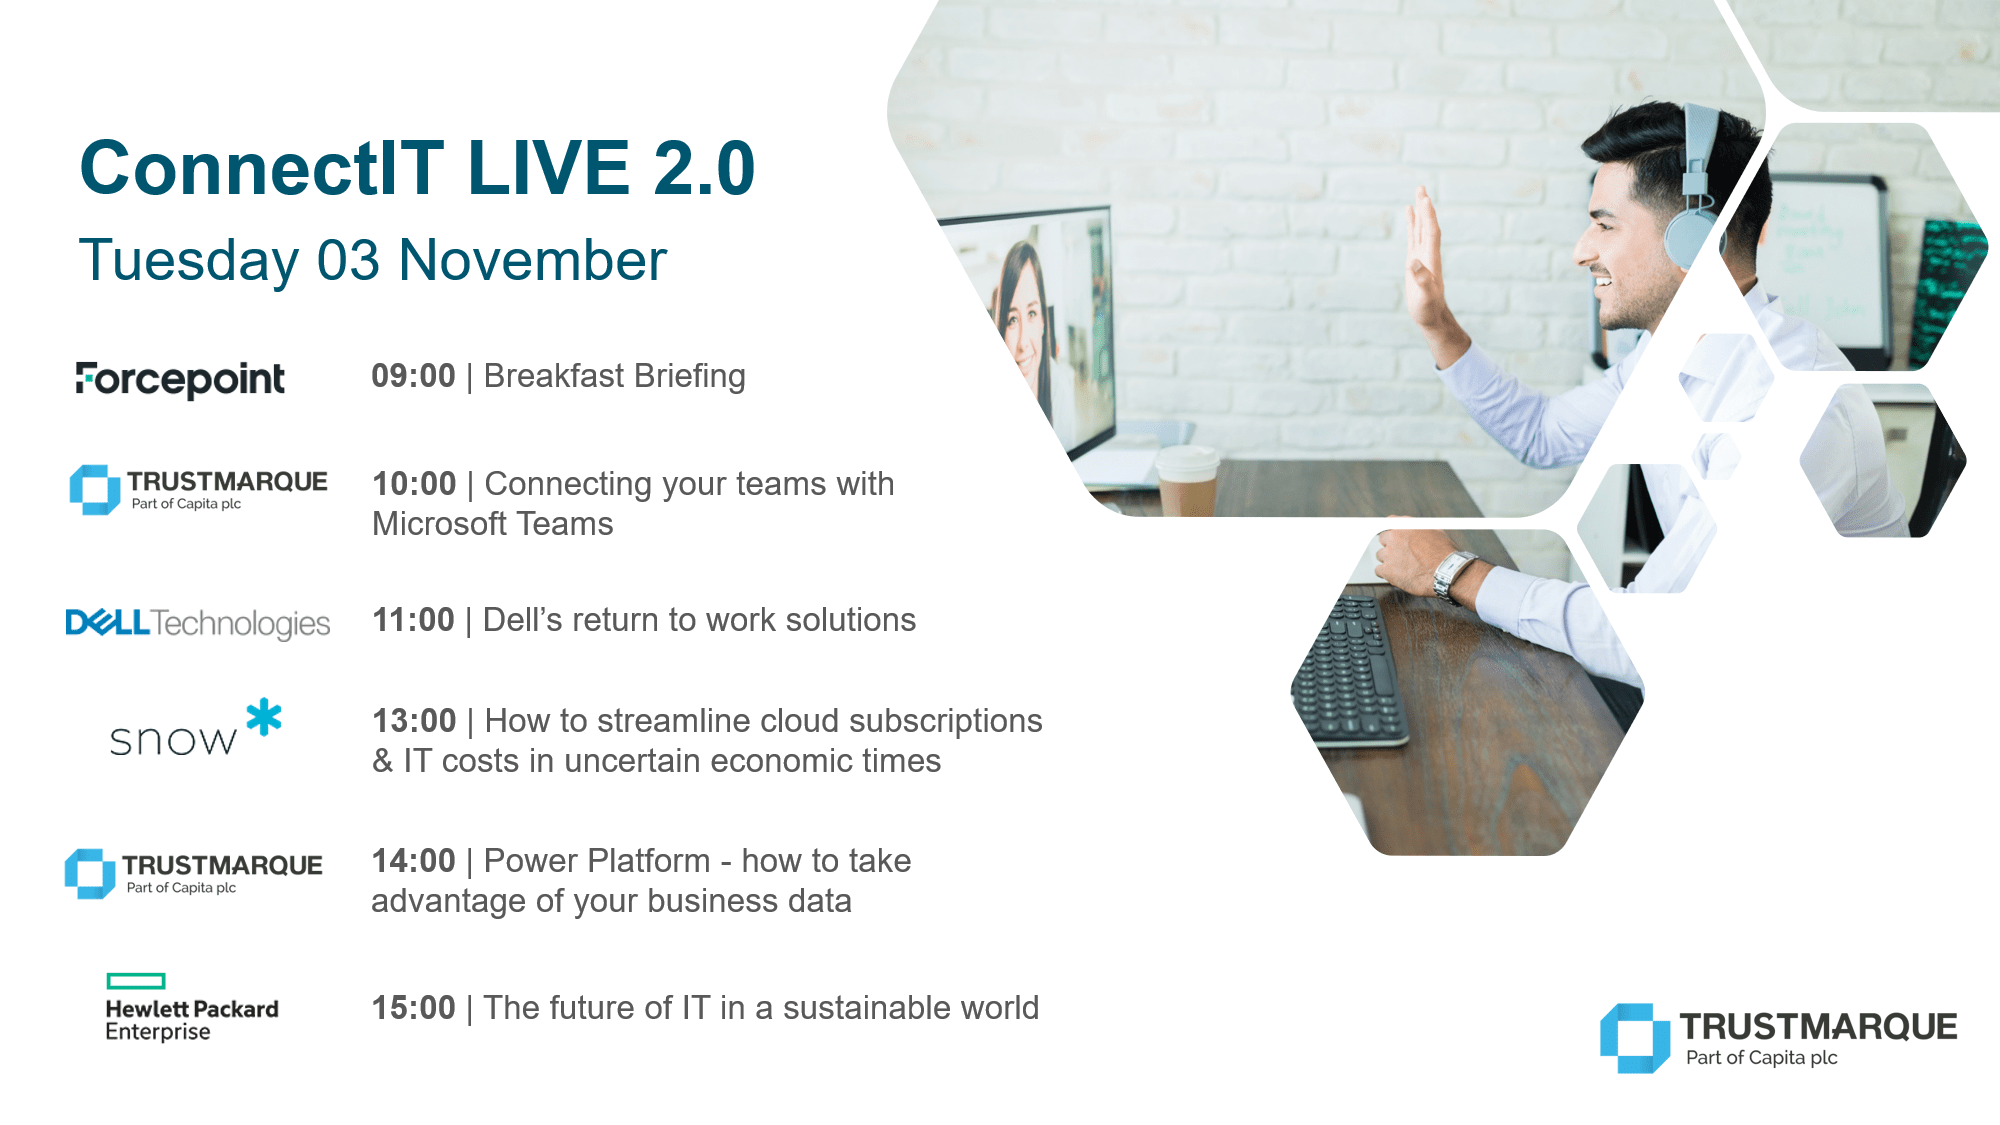 ConnectIT LIVE 2.0 - Tuesday 03 November